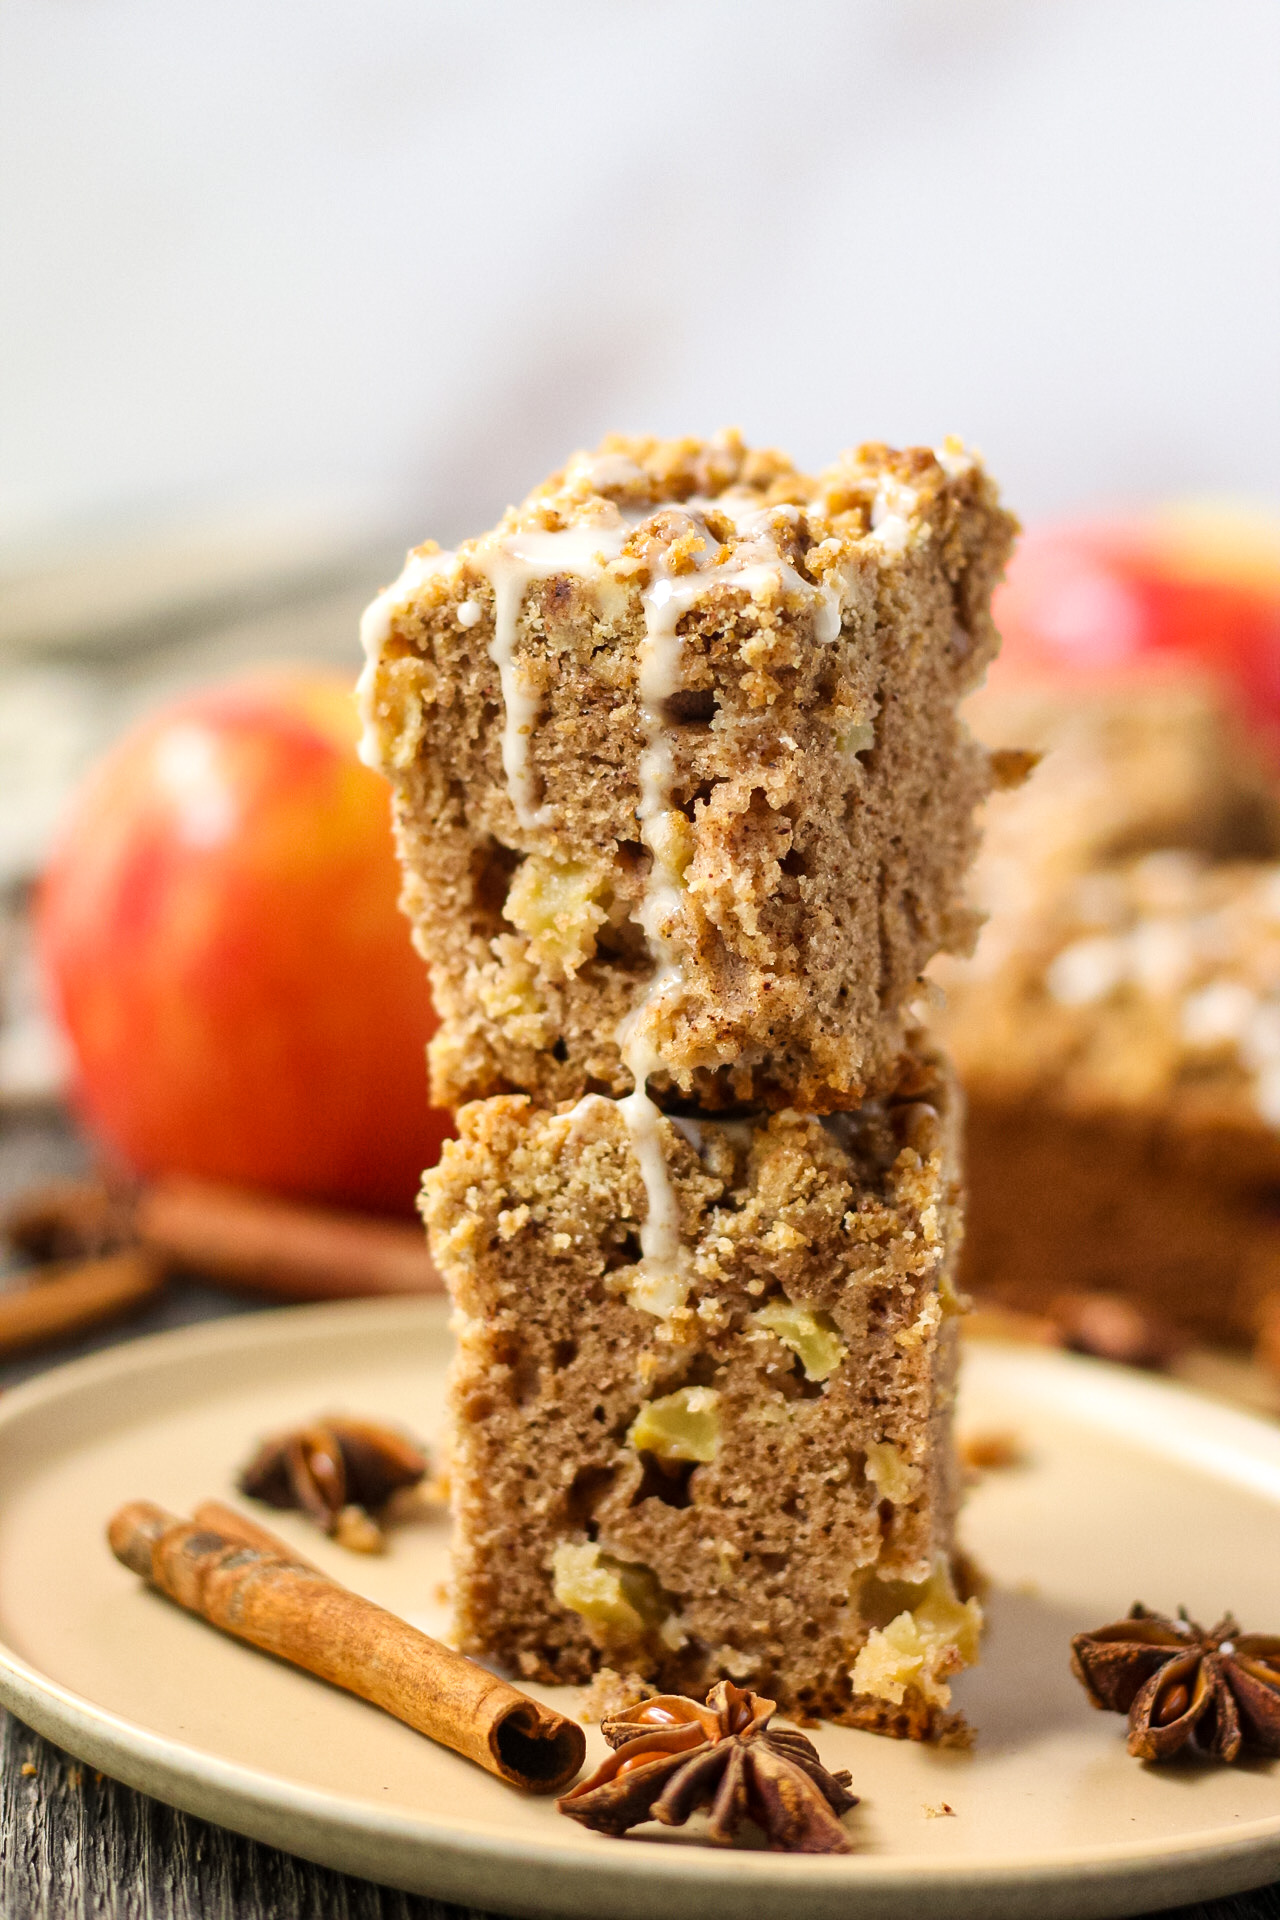 side shot of two slices of spiced apple crumb cake stacked on a brown plate with apples, cinnamon stick and star anise pods in the perimeter of shot.